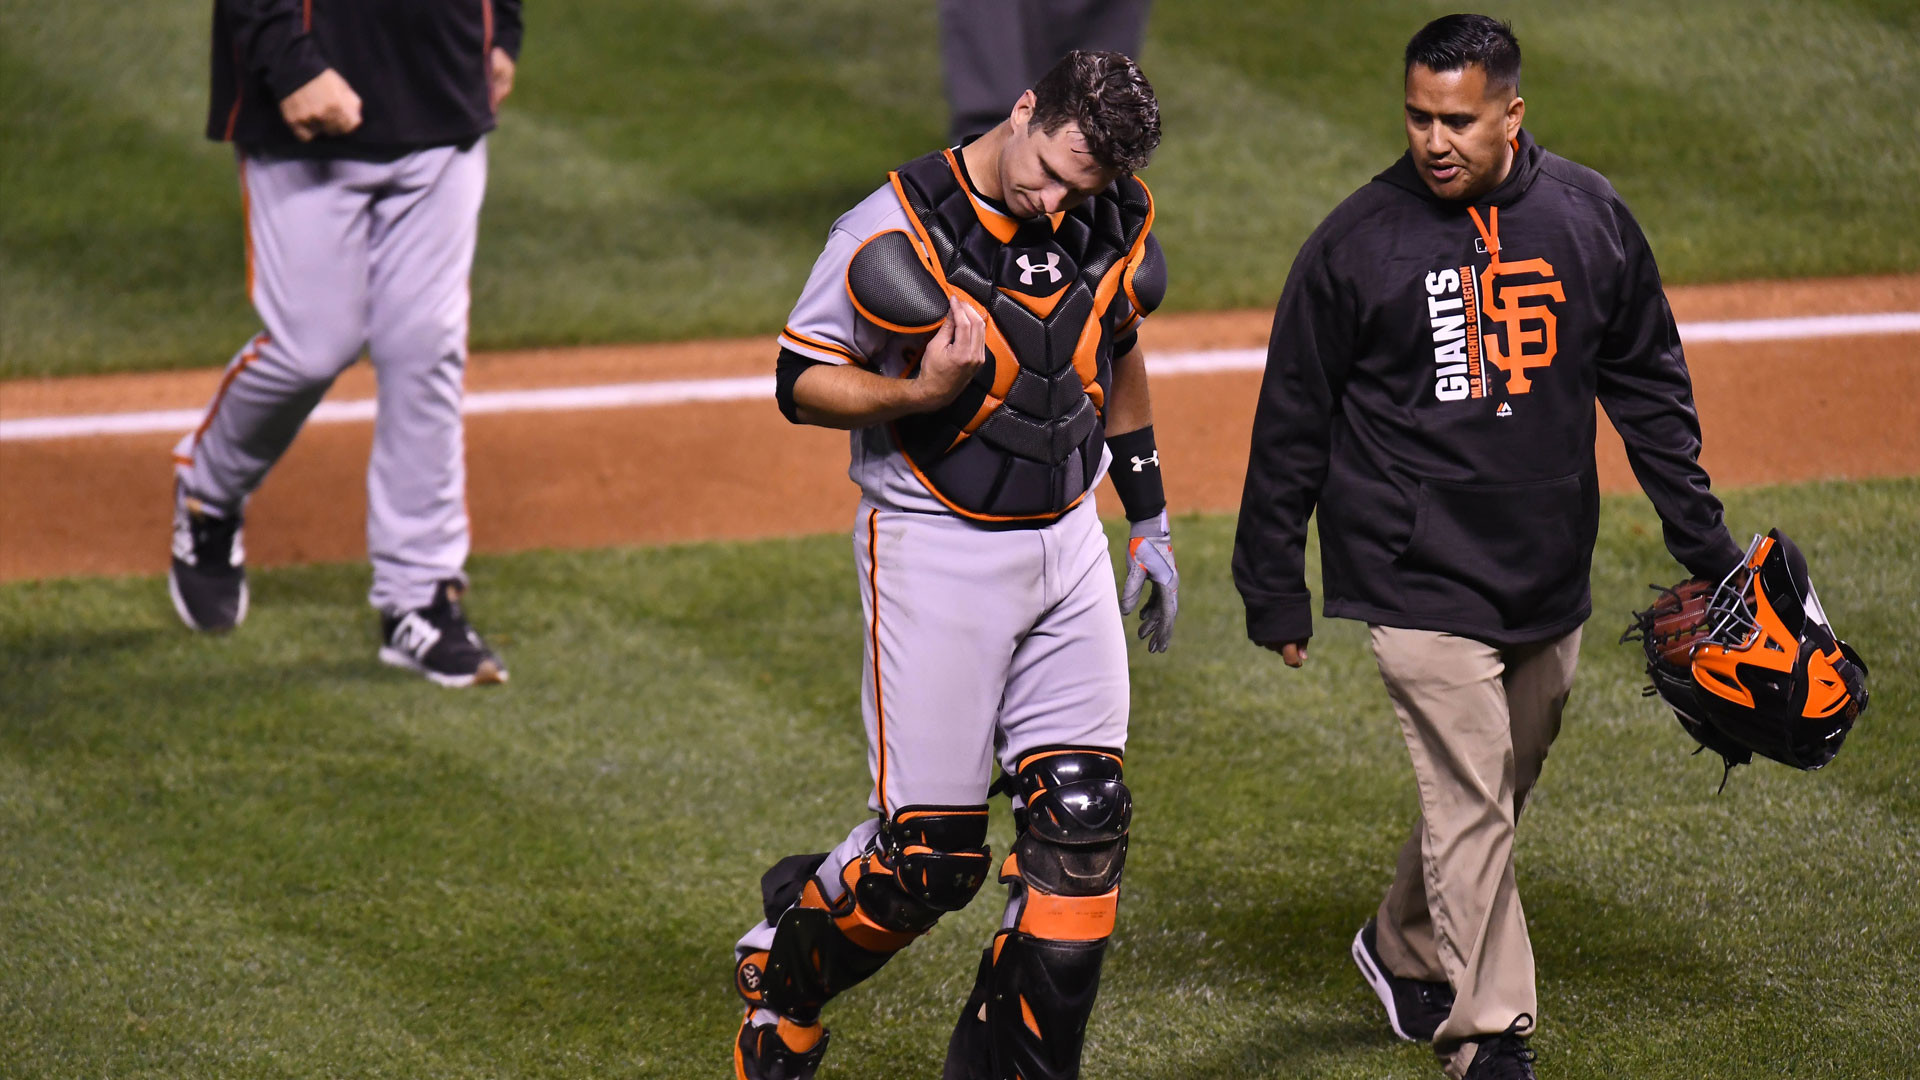 Buster Posey exits game vs Rockies after taking foul ball off bare hand |  NBCS Bay Area